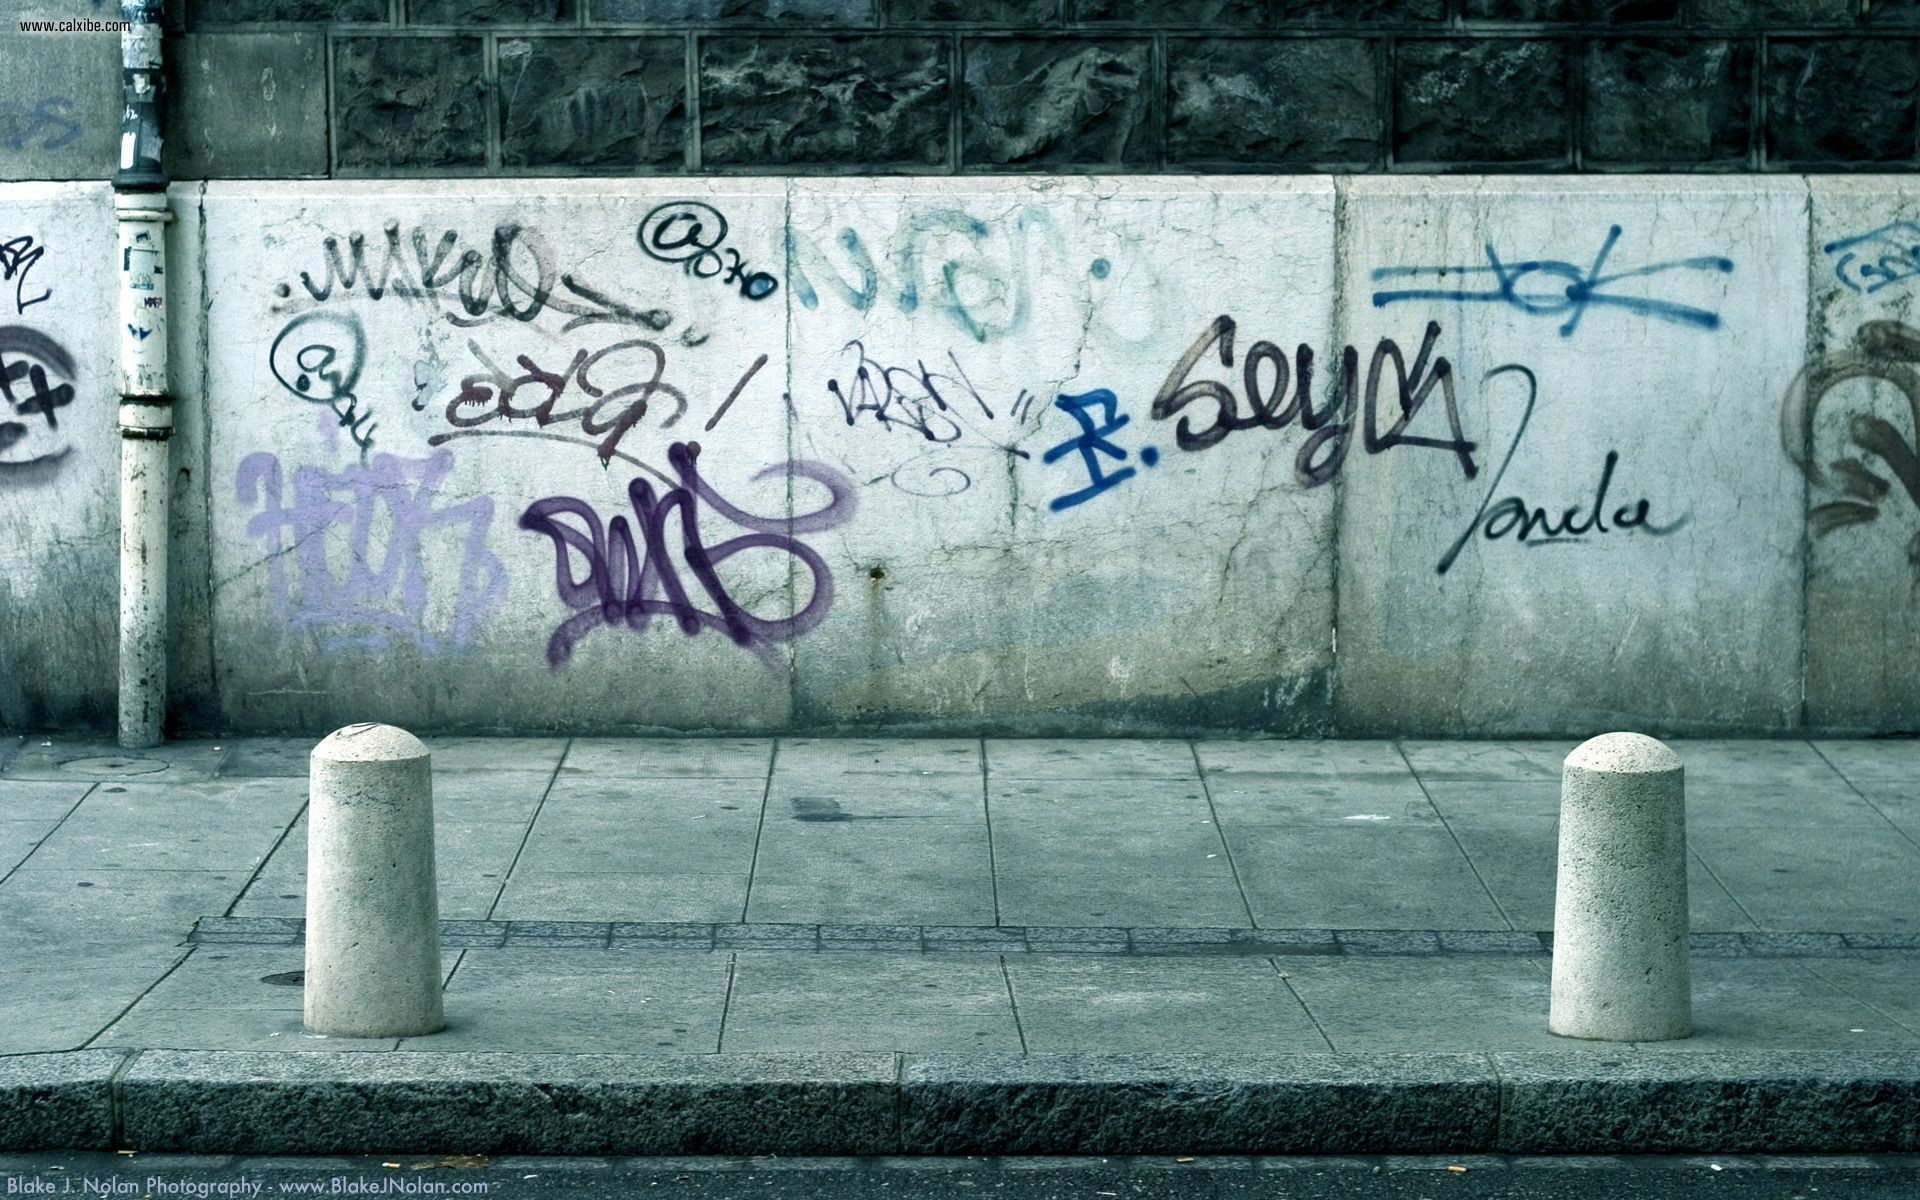 Wallpaper Hip Hop Graffiti – image #825279